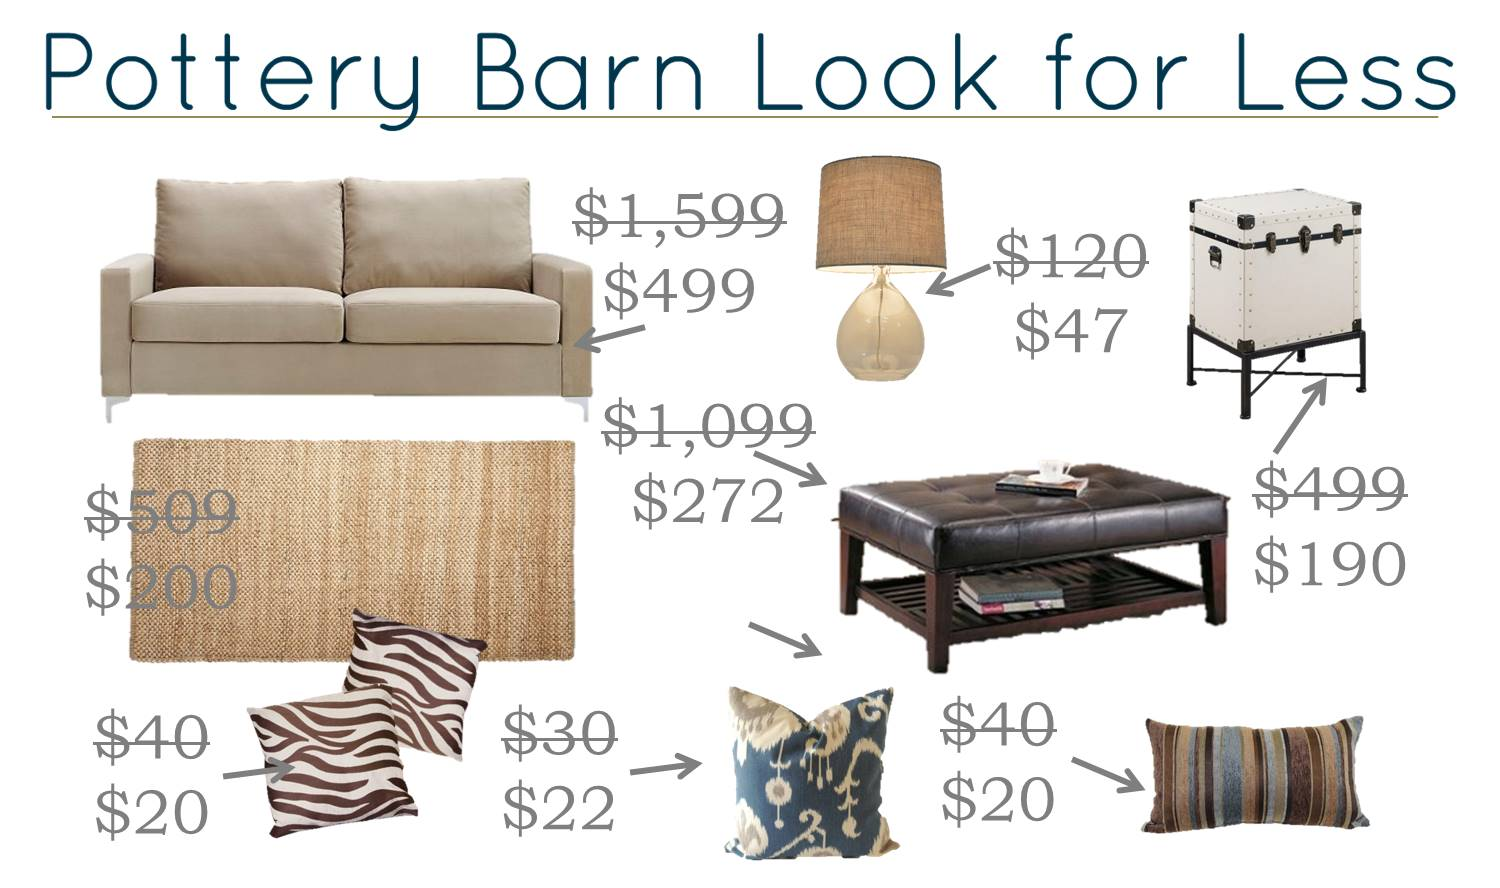 3.24 Pottery Barn Living Room For Less PRICES